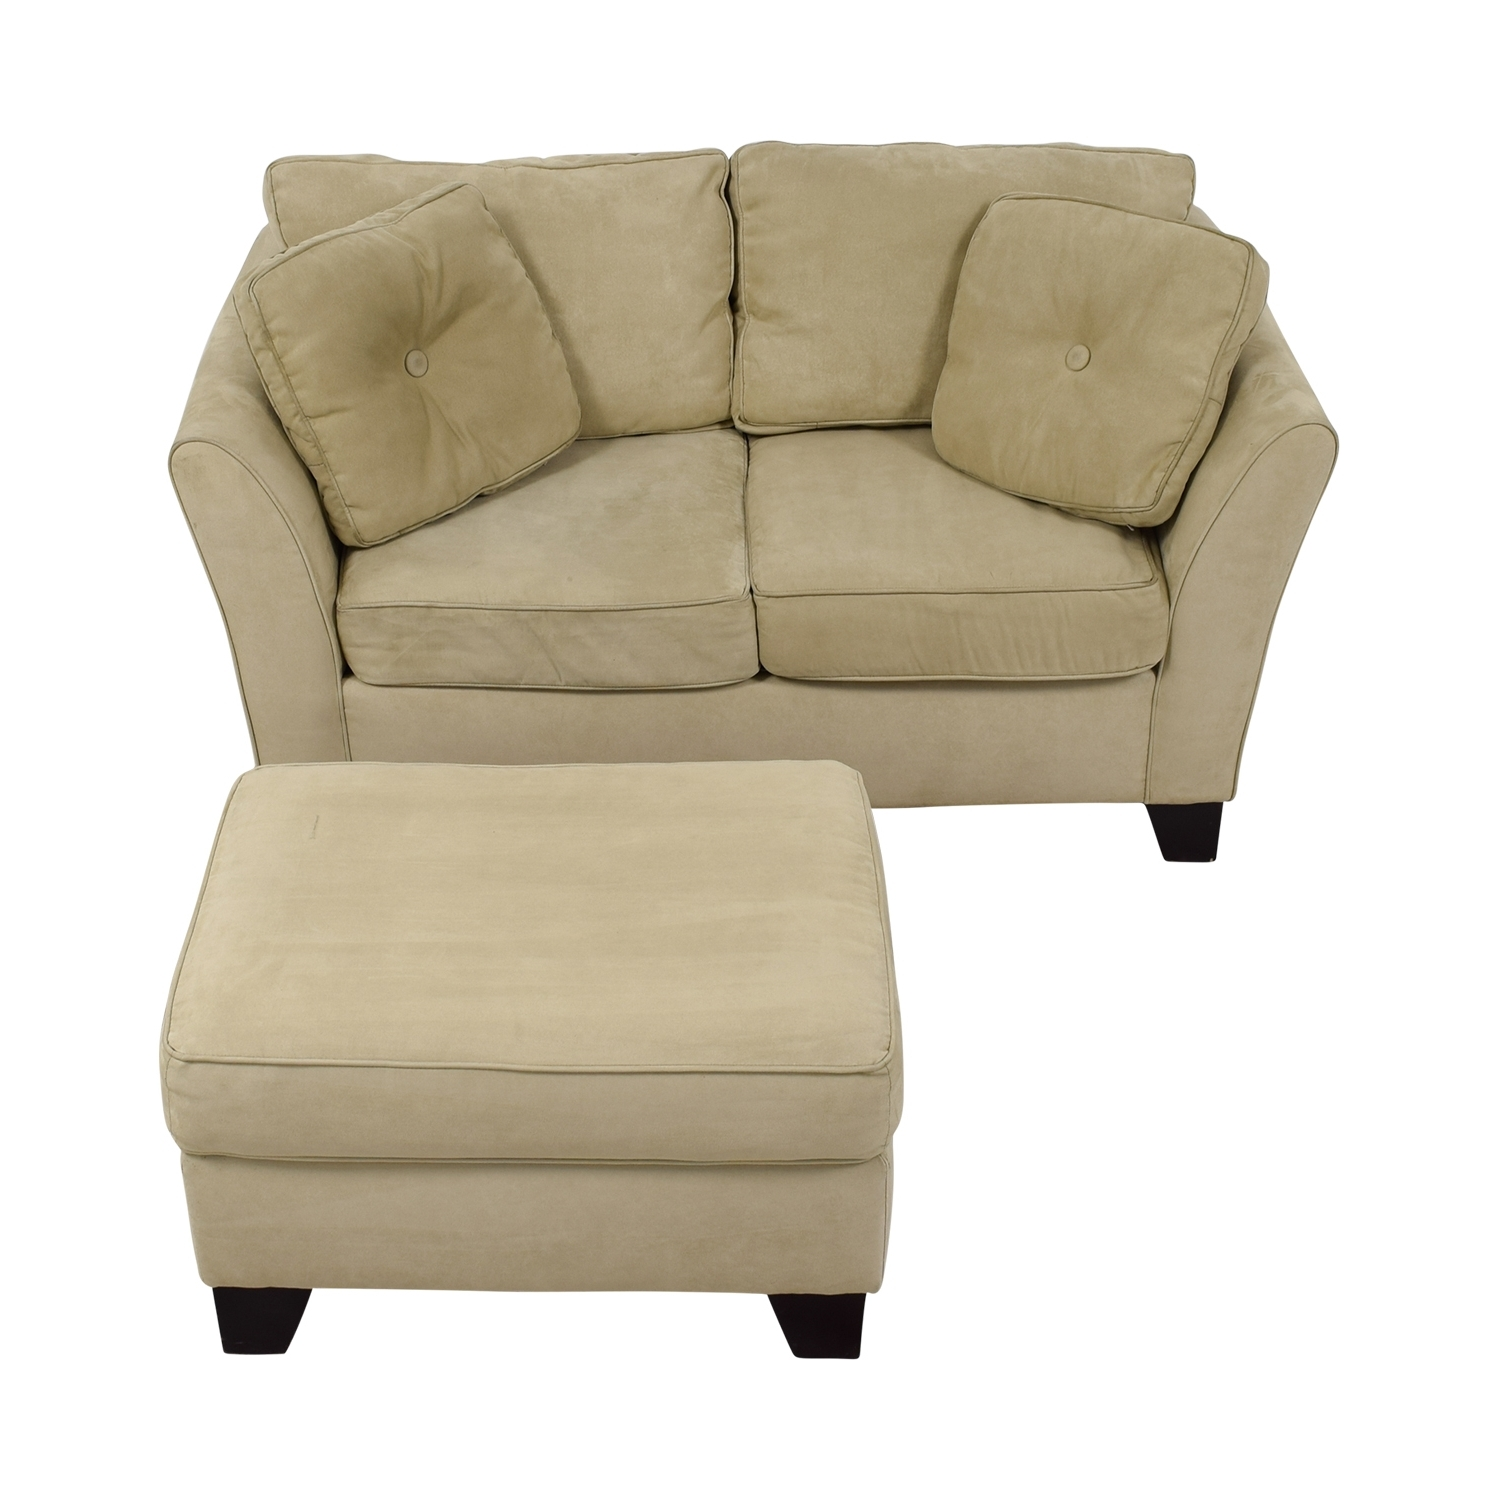 [%86% Off – Macy's Macy's Tan Loveseat With Ottoman / Sofas Pertaining To Fashionable Loveseats With Ottoman|Loveseats With Ottoman Inside Best And Newest 86% Off – Macy's Macy's Tan Loveseat With Ottoman / Sofas|Well Known Loveseats With Ottoman Inside 86% Off – Macy's Macy's Tan Loveseat With Ottoman / Sofas|Fashionable 86% Off – Macy's Macy's Tan Loveseat With Ottoman / Sofas With Loveseats With Ottoman%] (View 10 of 20)